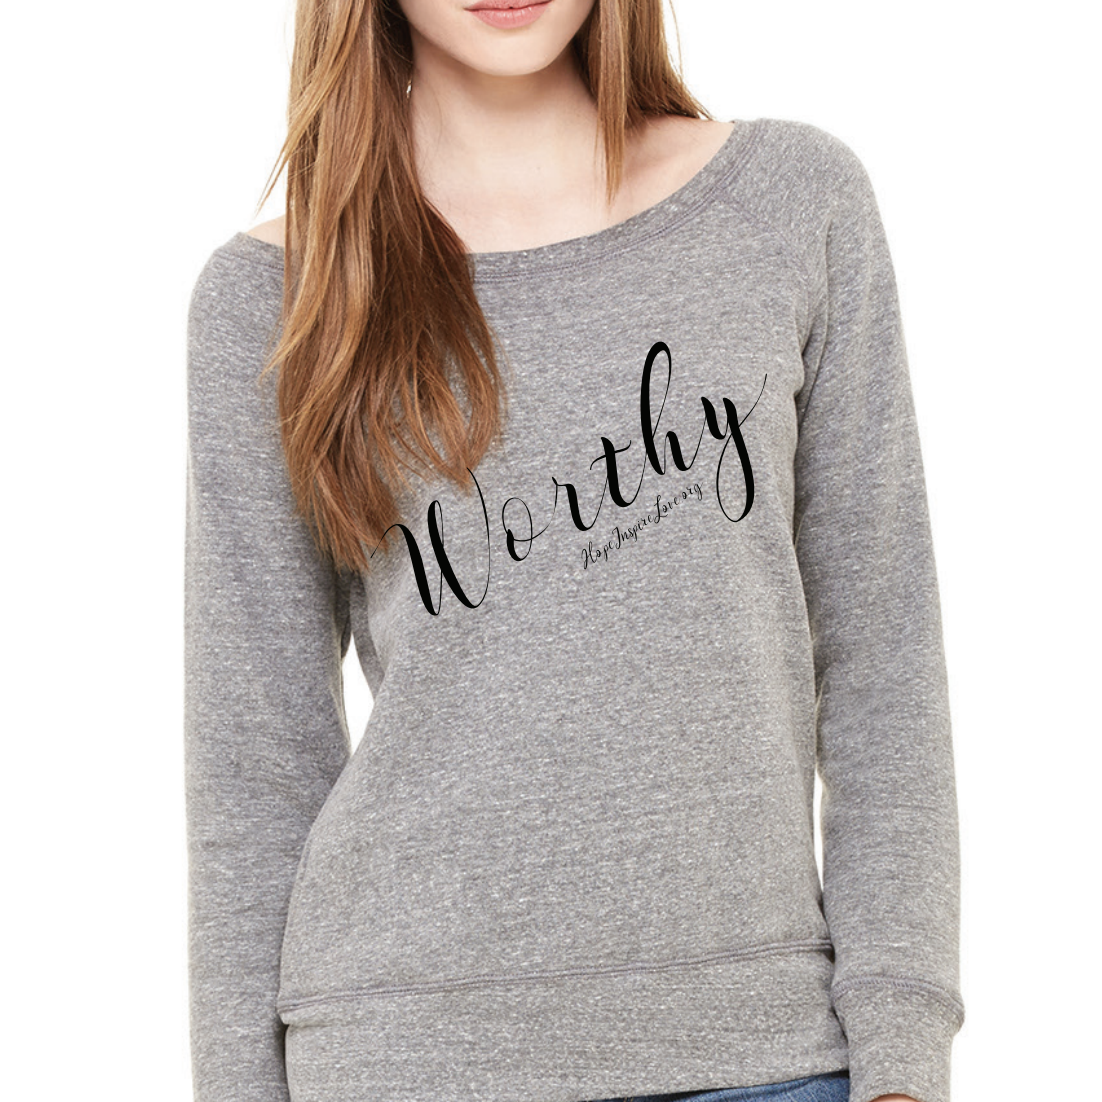 Worthy Scoop Neck Sweatshirt - Wave Washed Grey